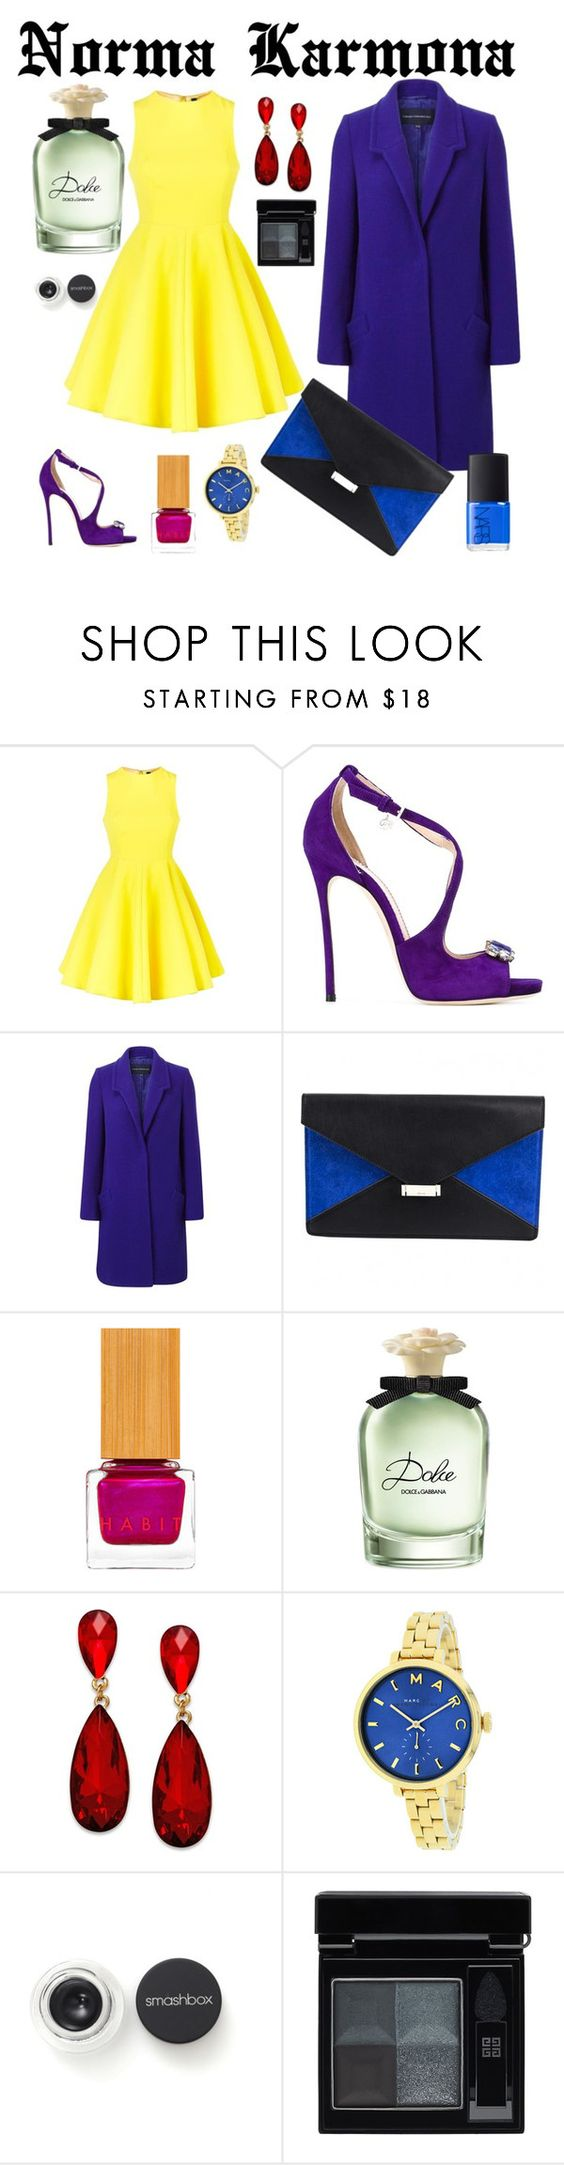 """Norma Karmona"" by normacarmona on Polyvore featuring moda, AQ/AQ, Dsquared2, French Connection, Habit Cosmetics, Dolce&Gabbana, Style & Co., Marc Jacobs, Smashbox y Givenchy"